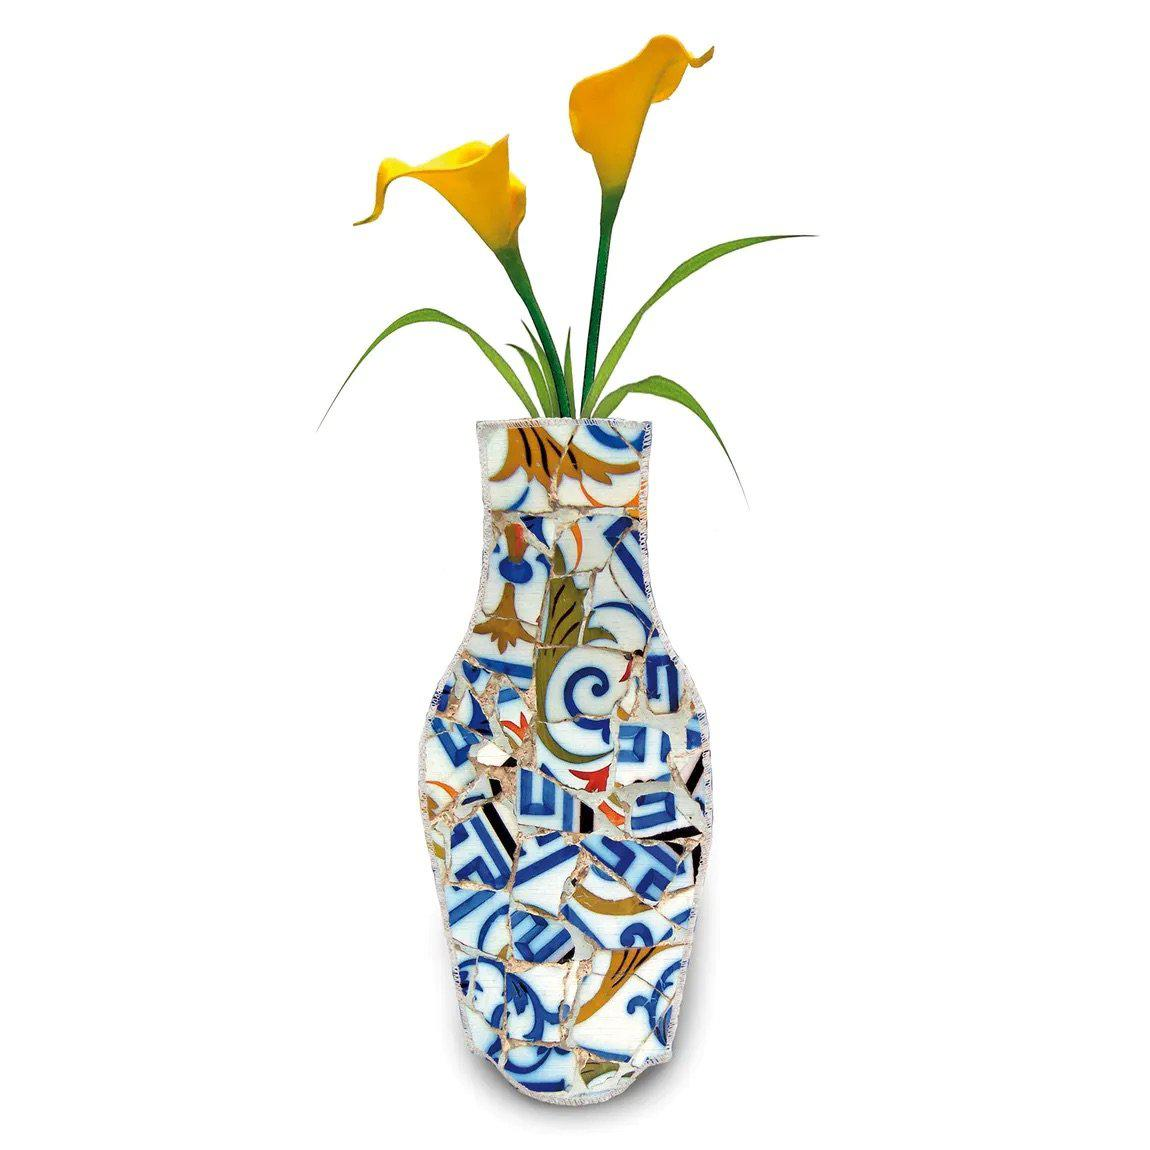 Barceloning Trencazul Cotton Flower Vase-Boomingdutch